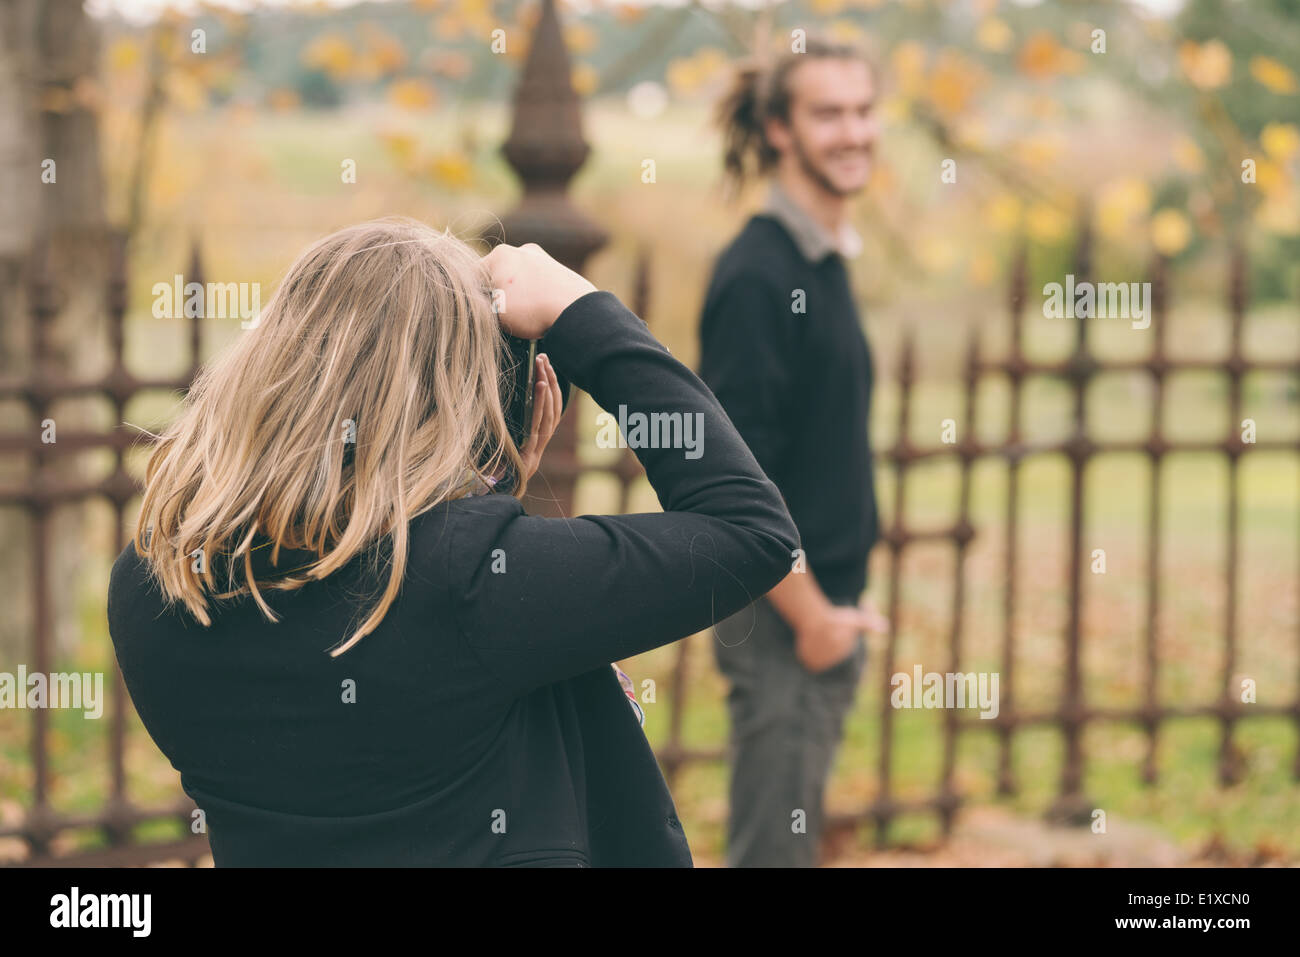 young man being photographed - Stock Image